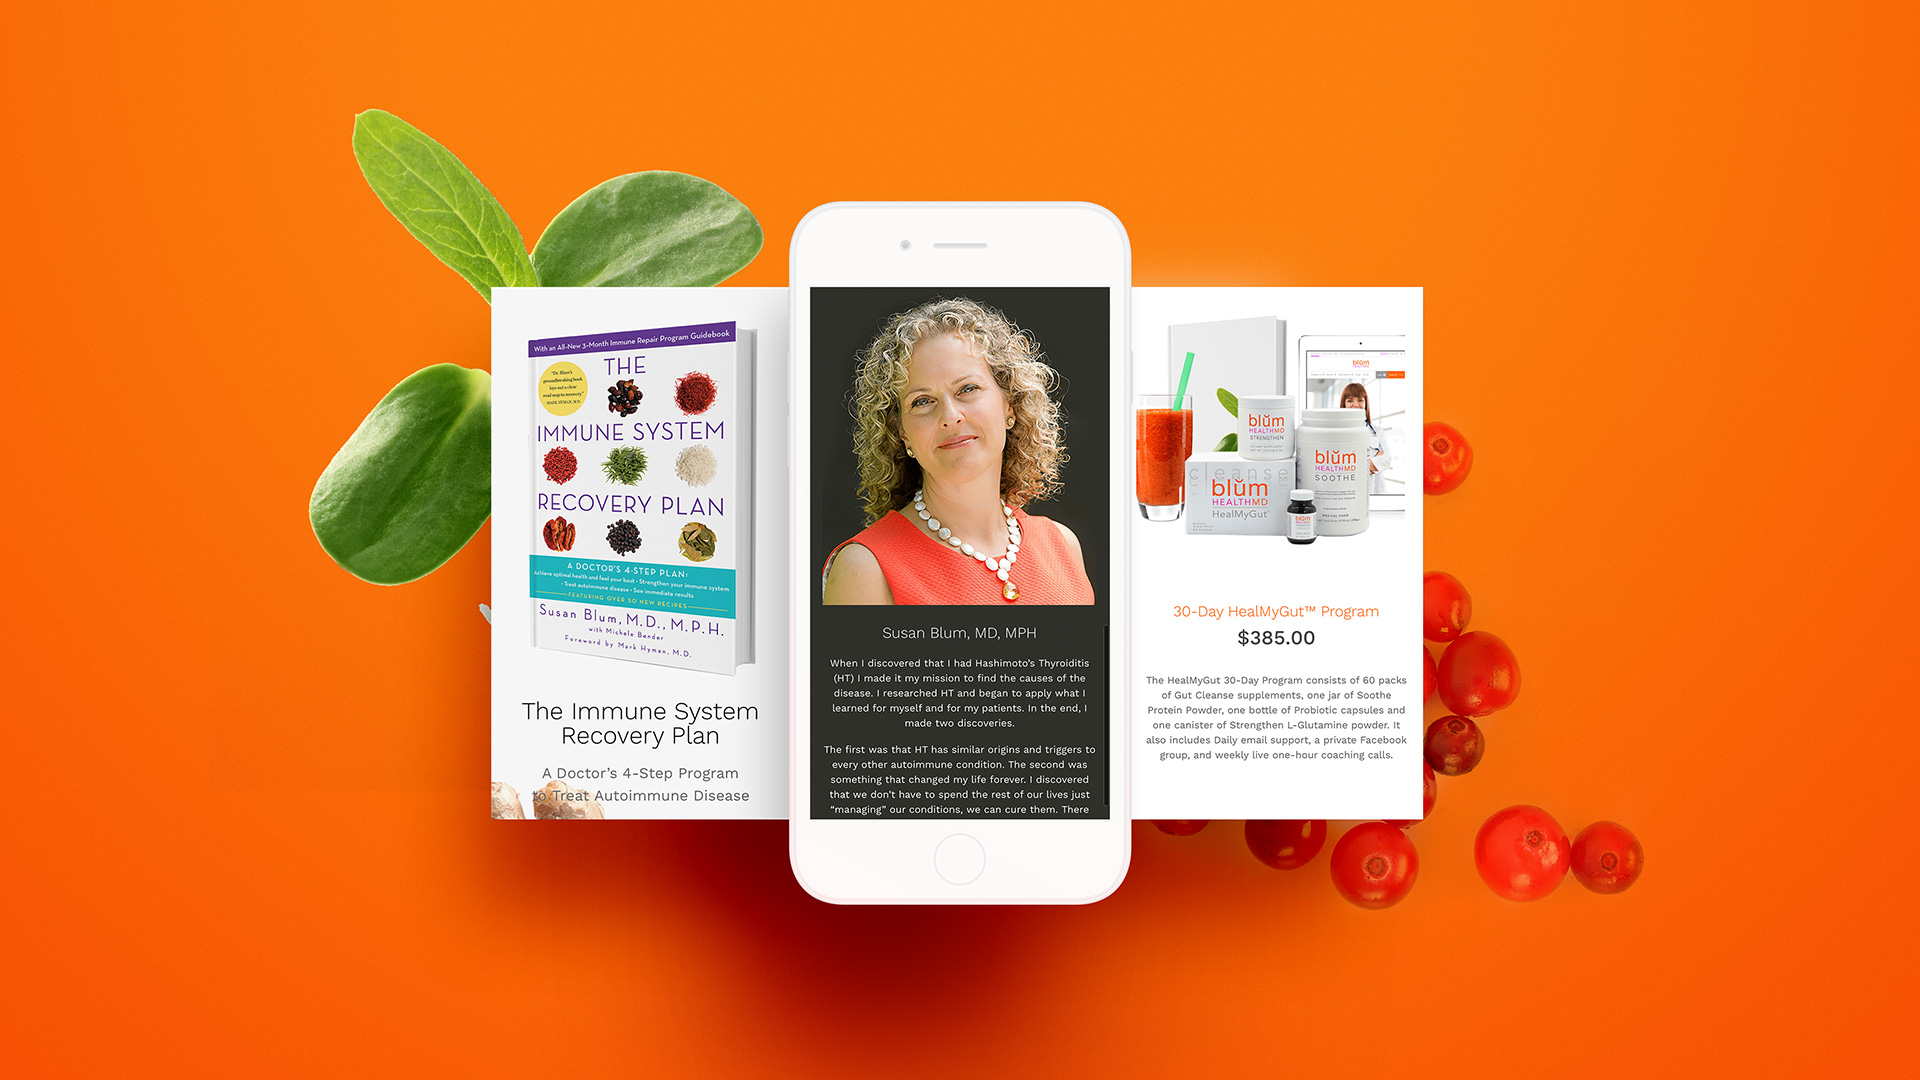 Blum Health MD Website Design iPhone